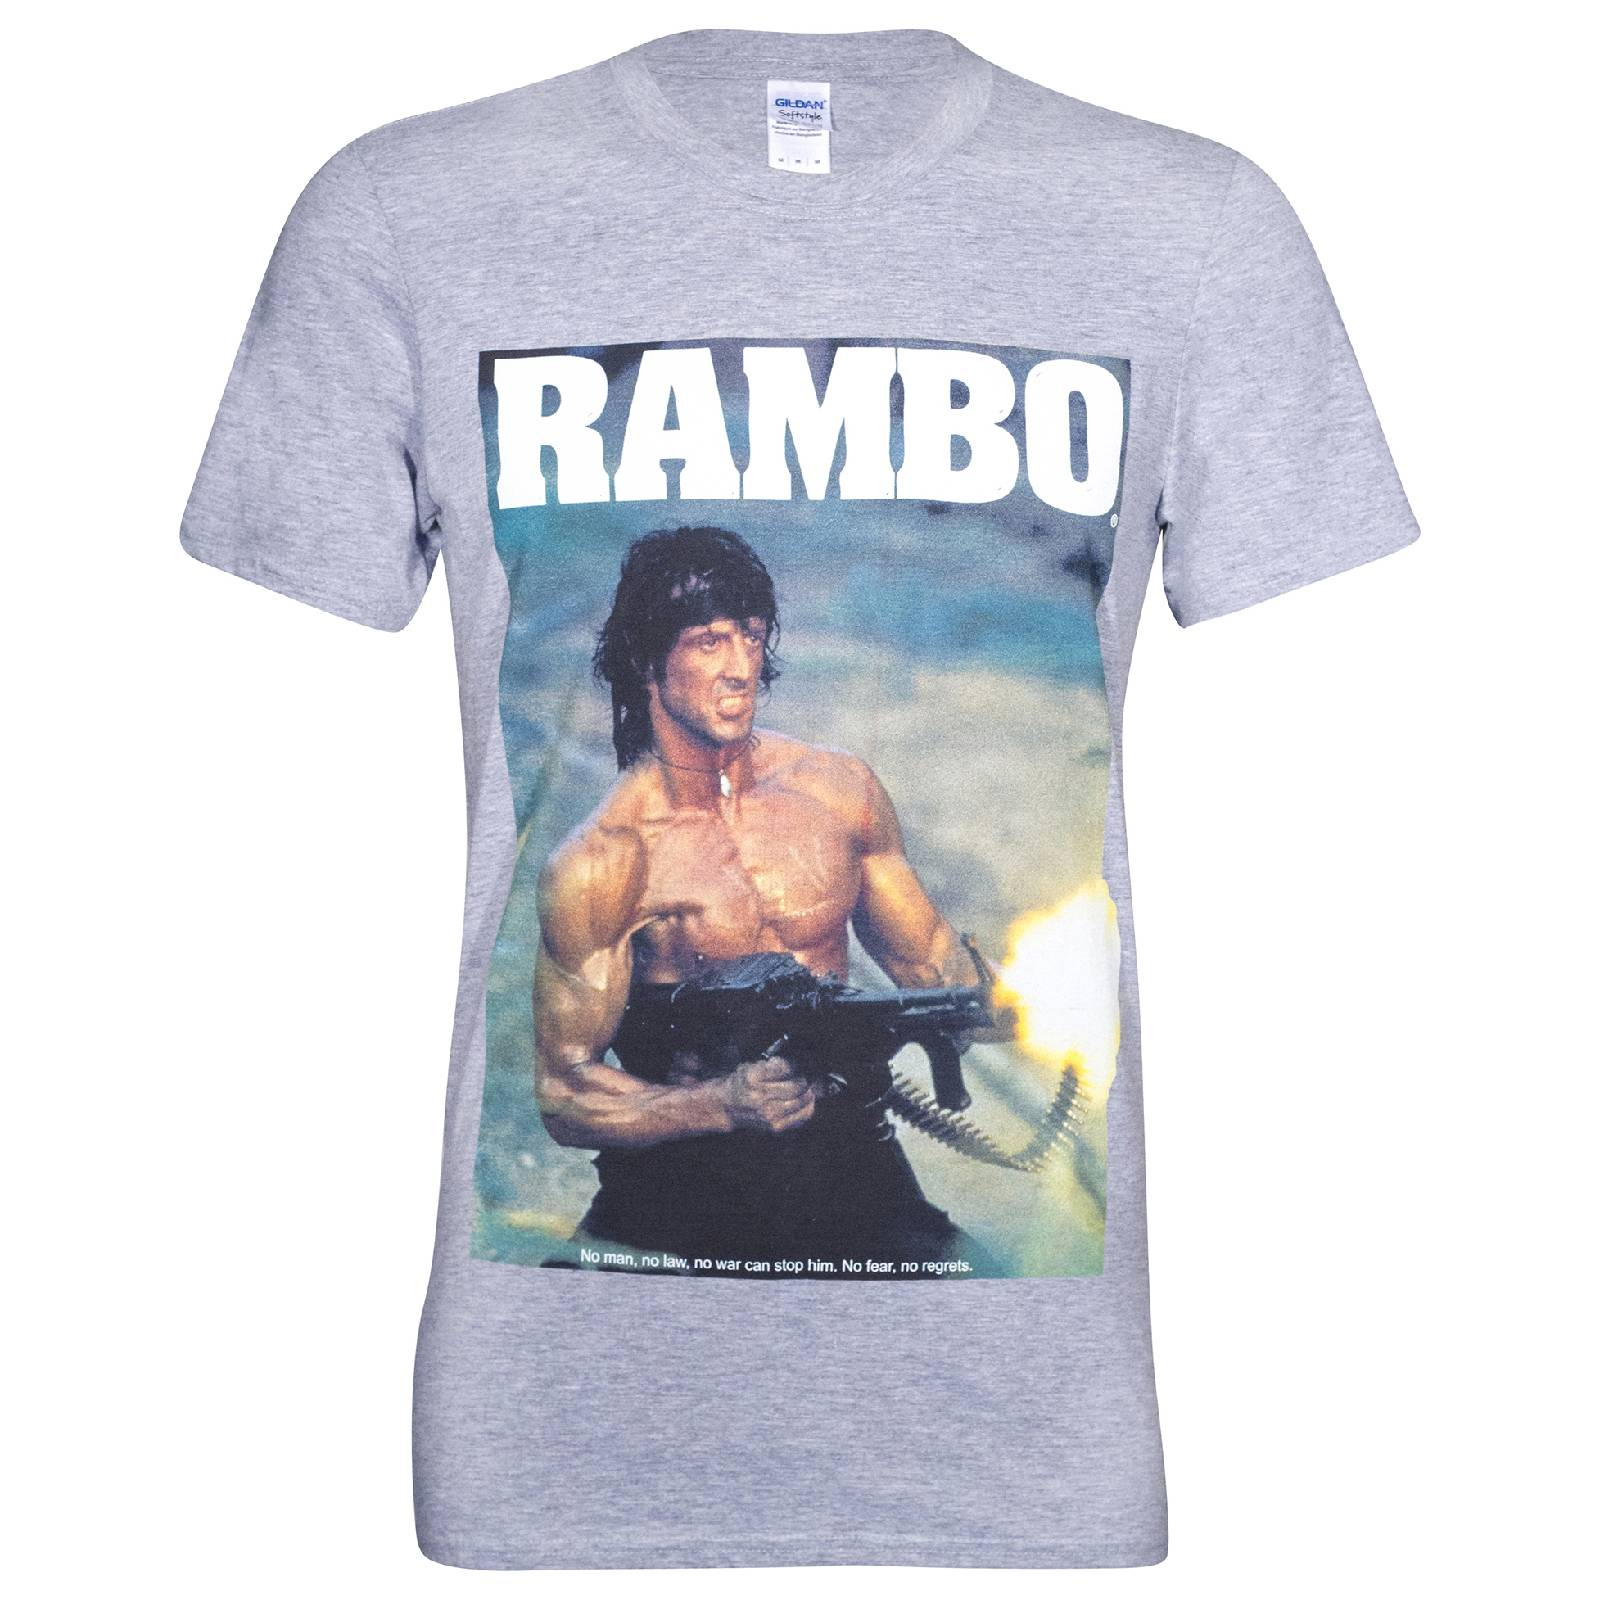 Geek Clothing Rambo Men's Gun T-Shirt - Grey - M - Grey